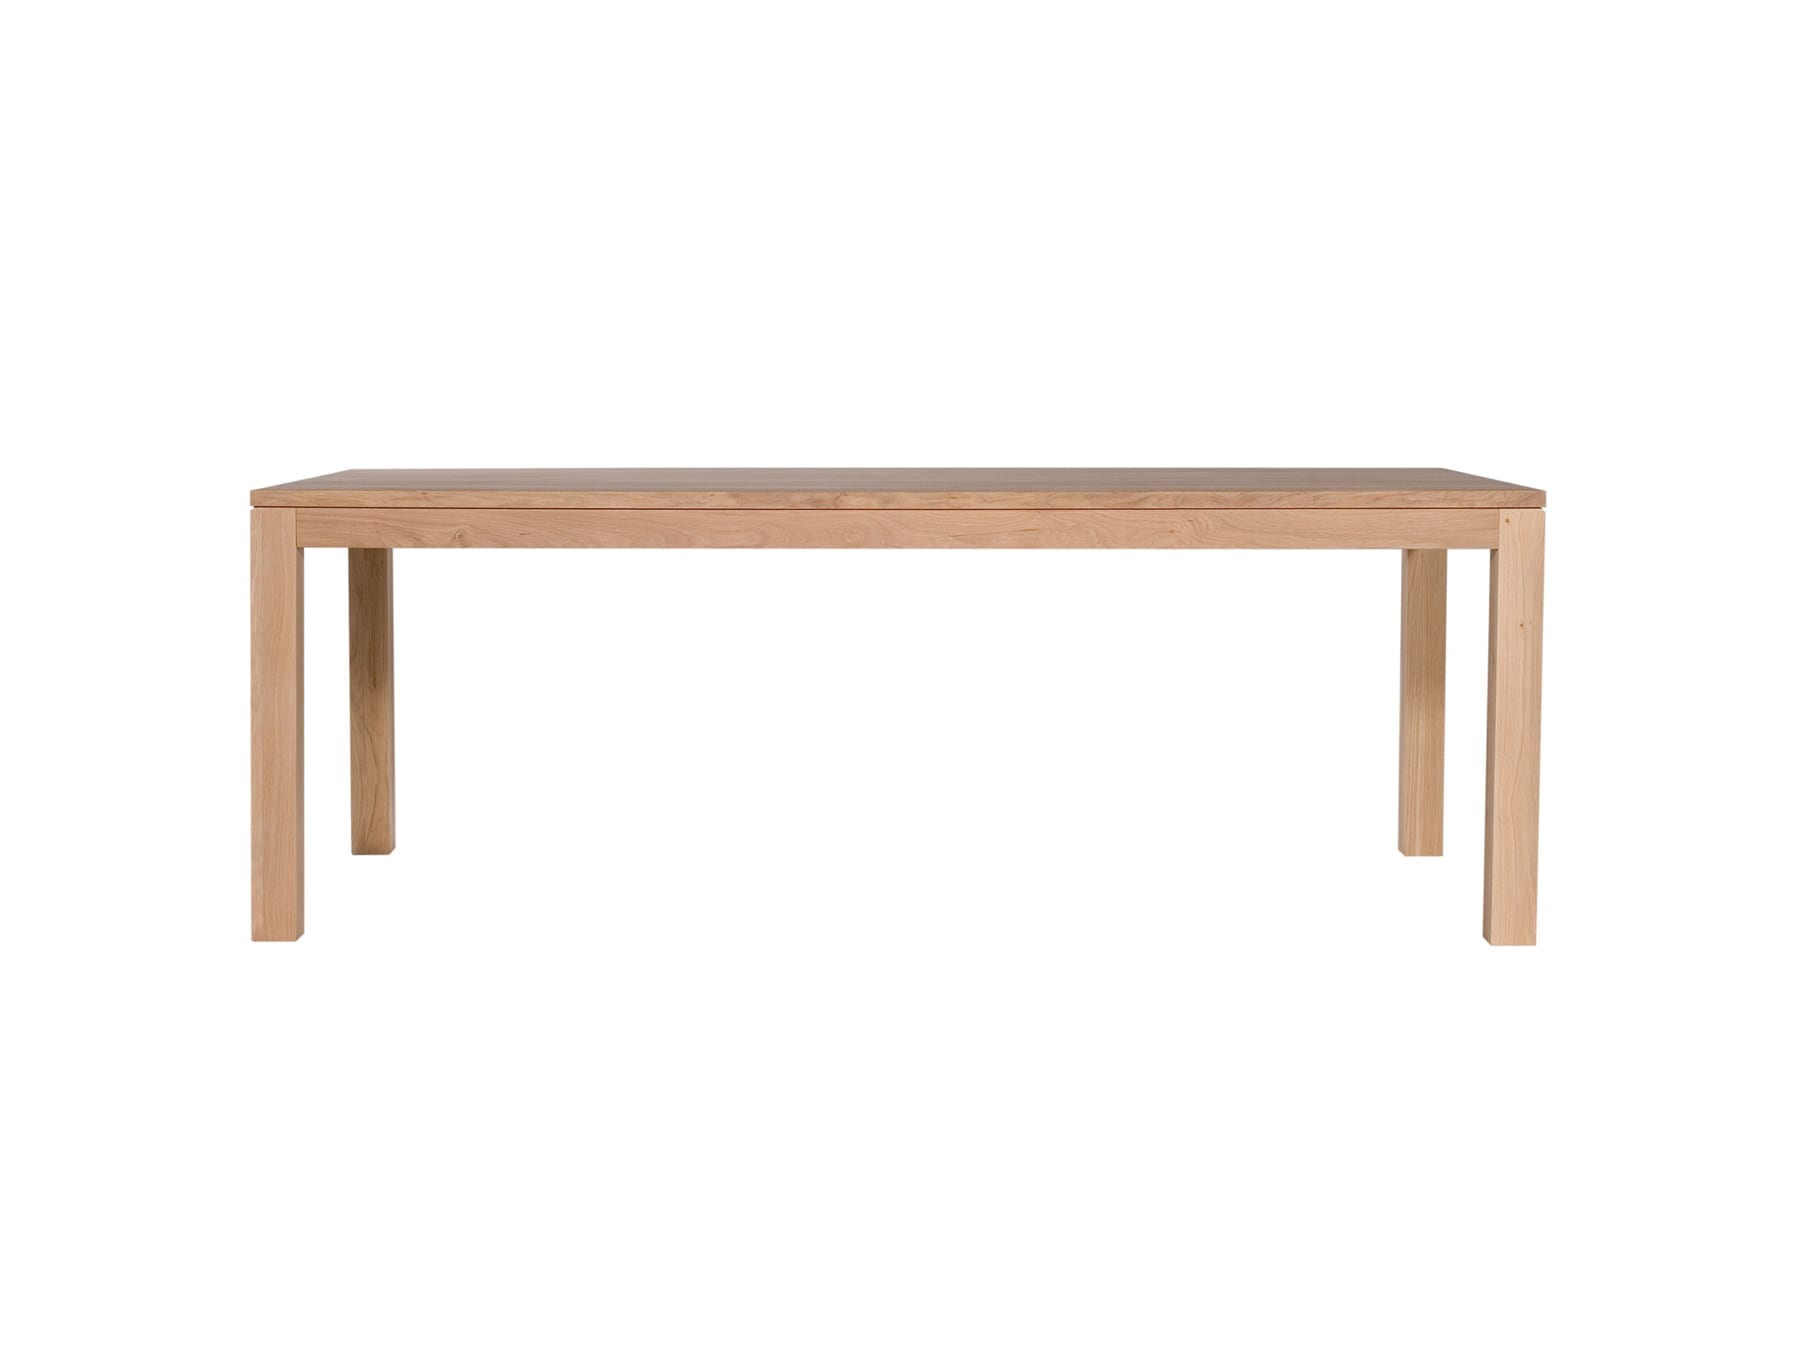 Ethnicraft Straight Dining Table available at McKenzie & Willis